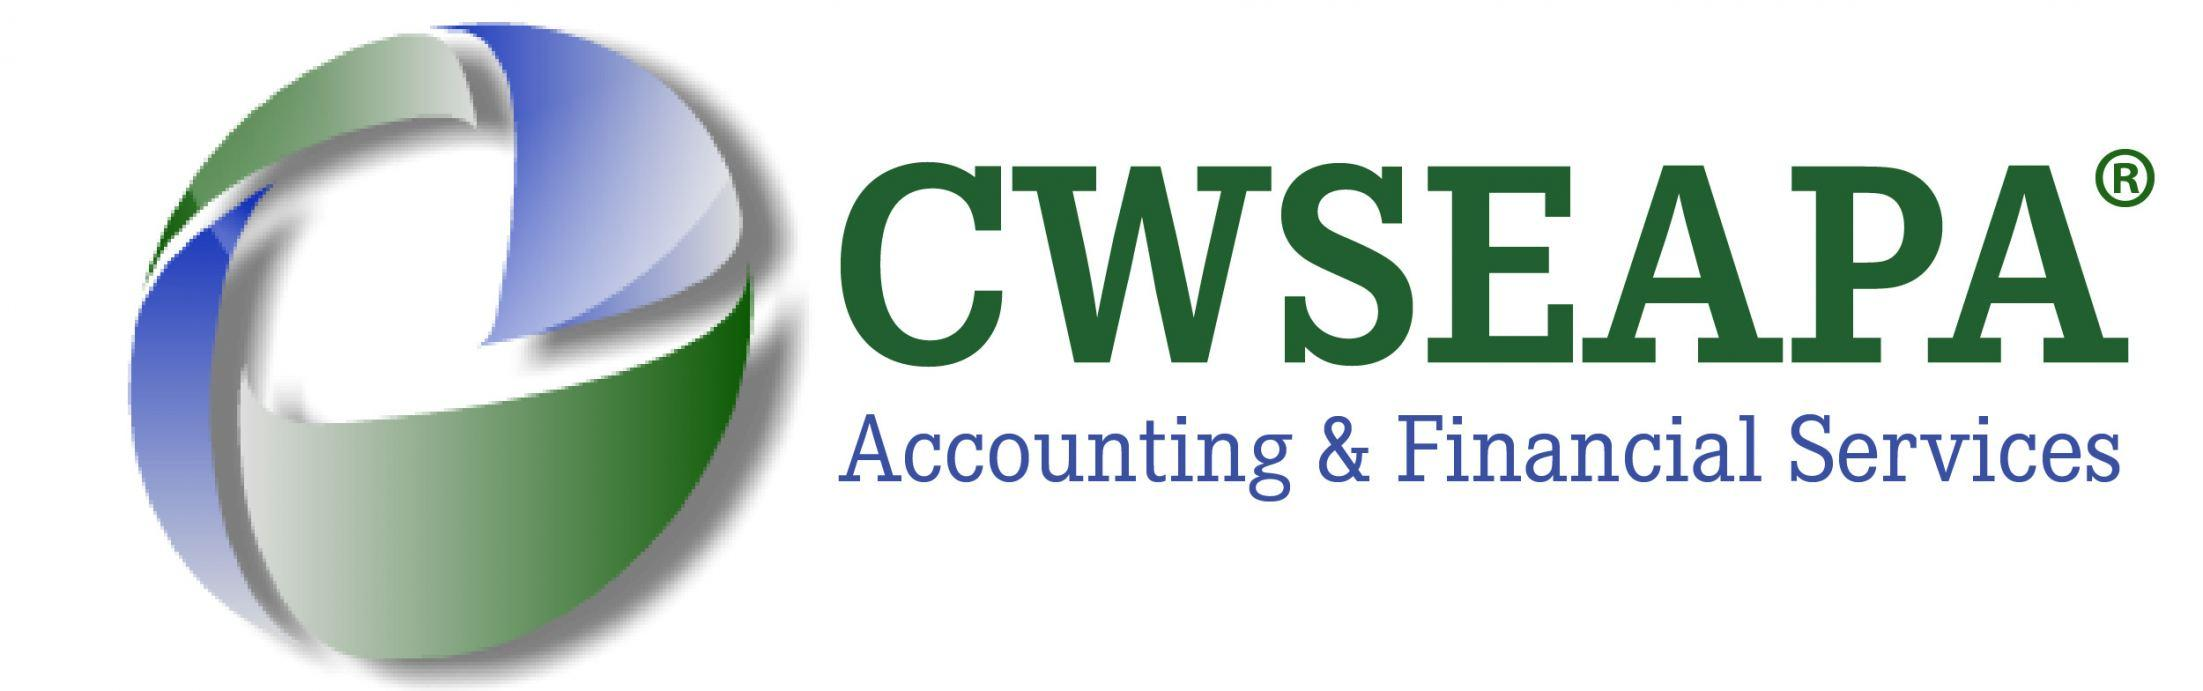 CWSEAPA® – Accounting & Financial Services